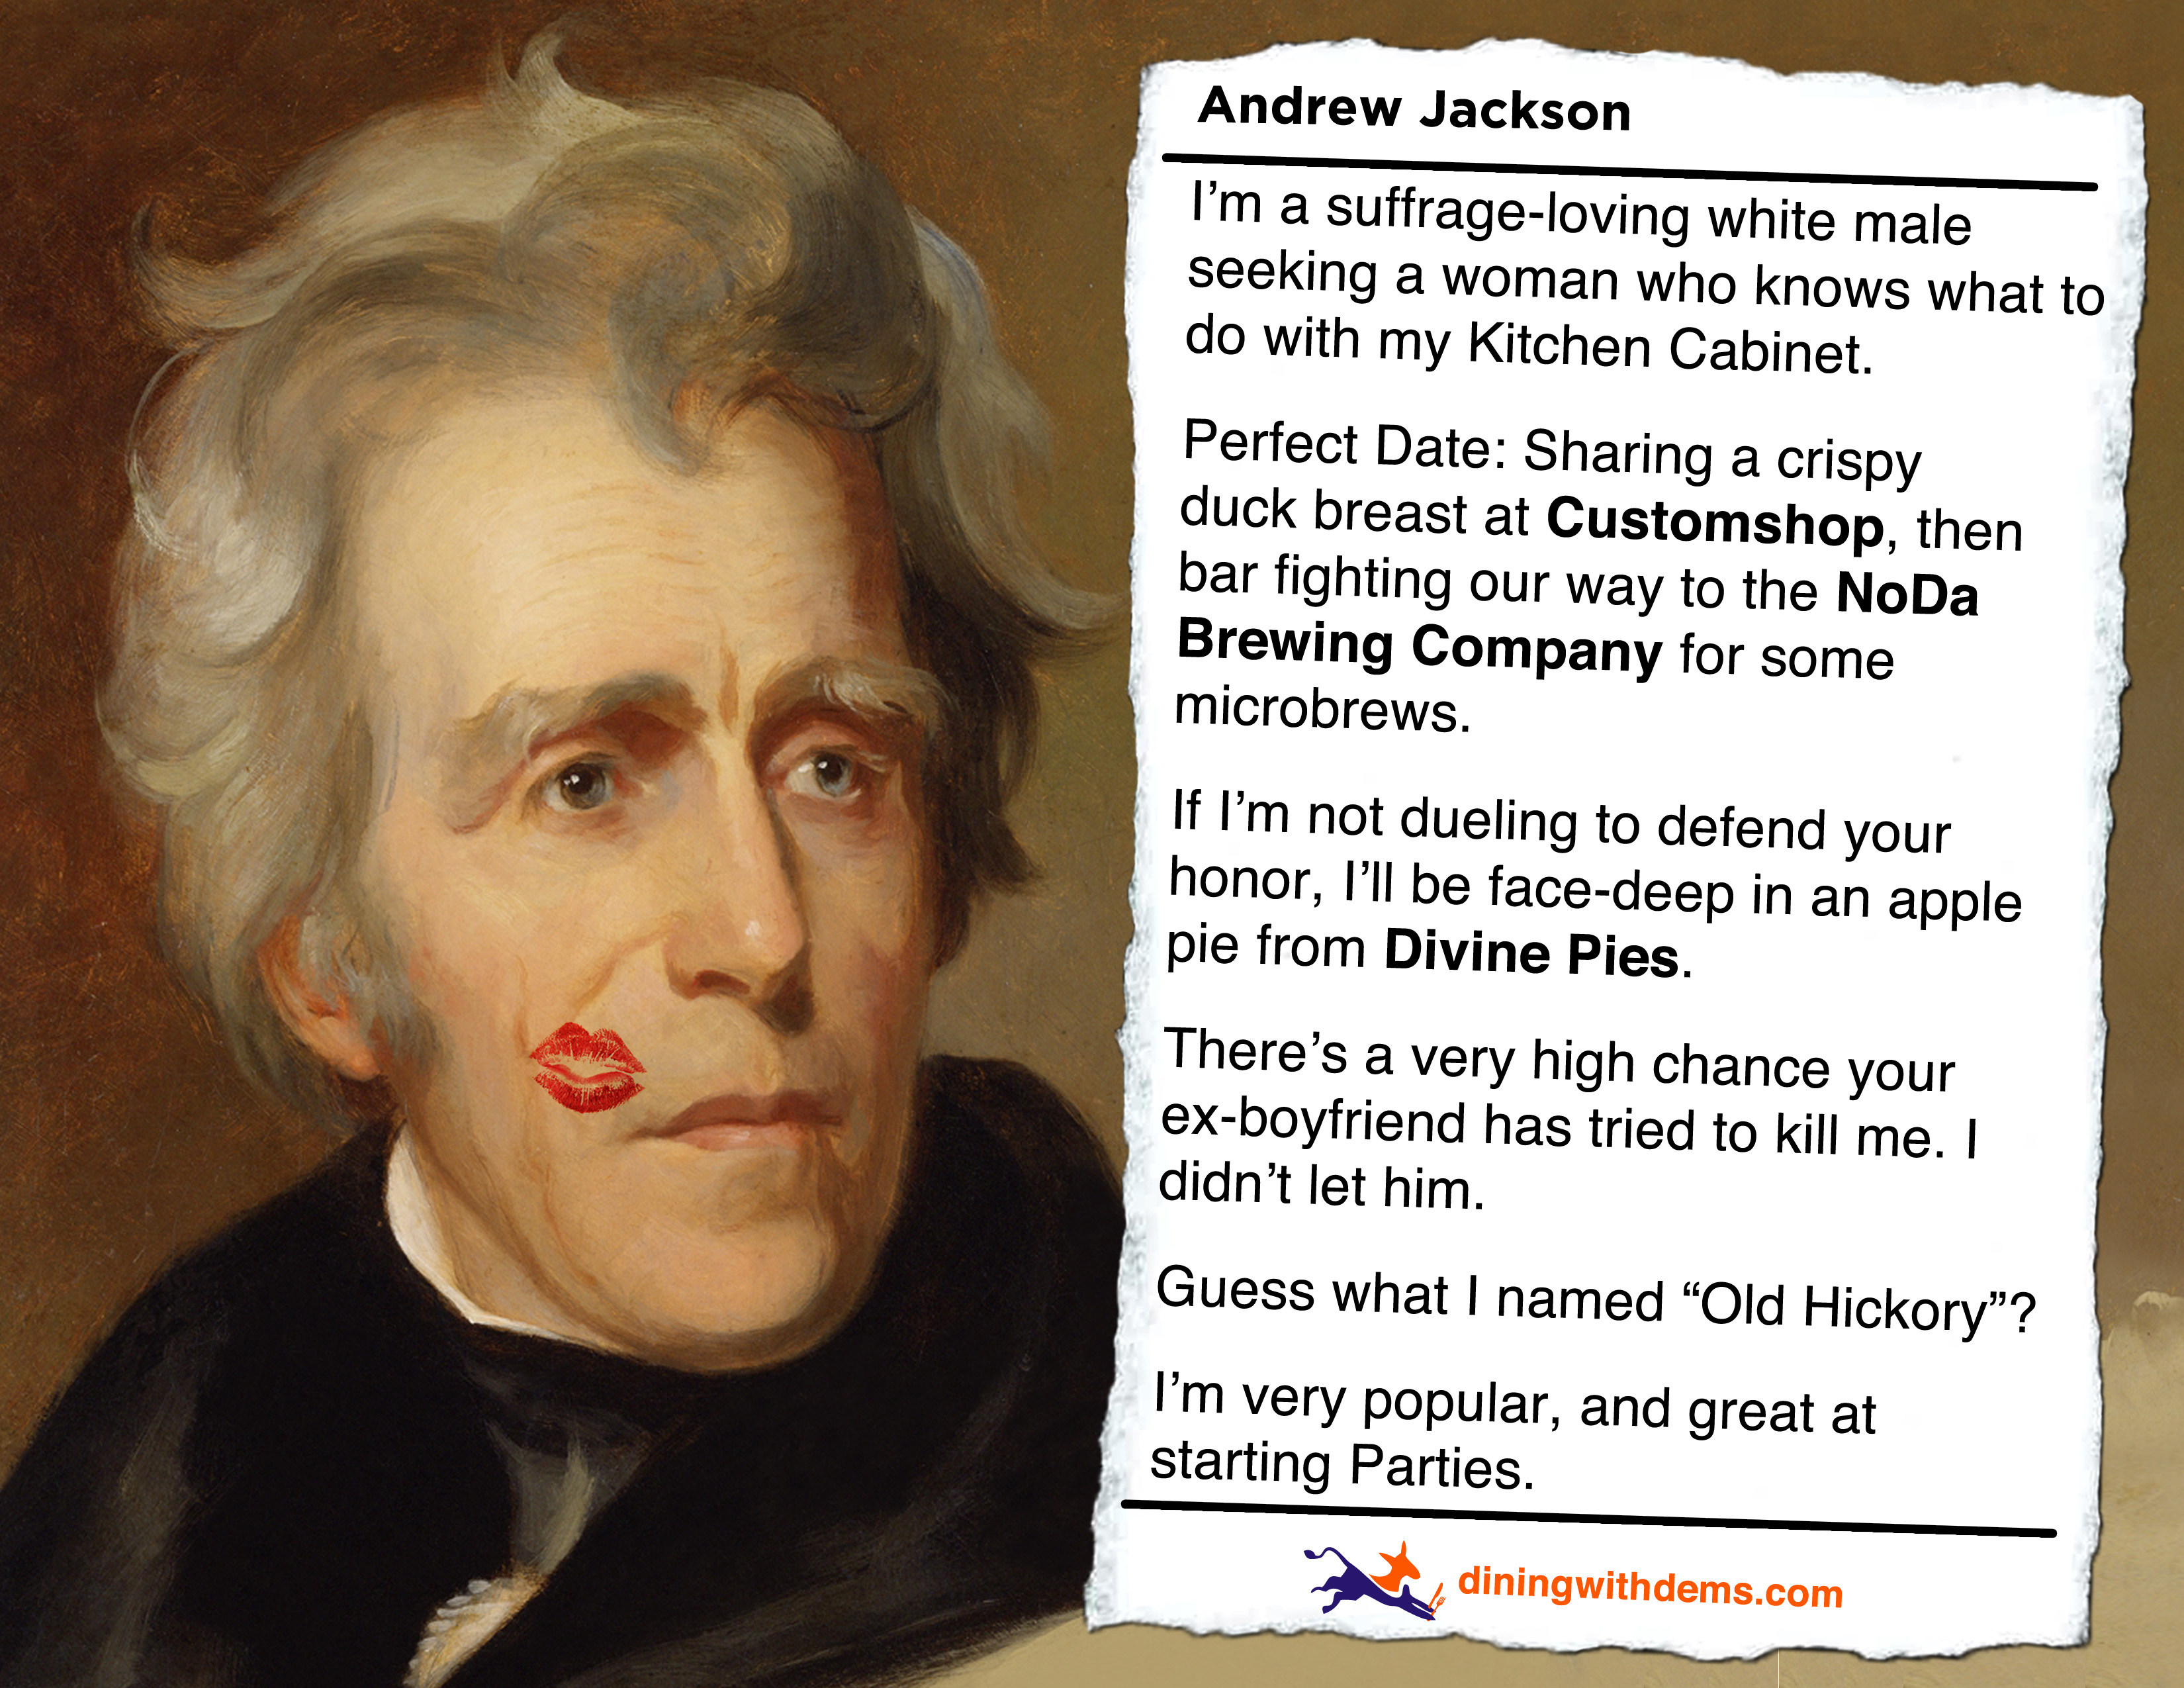 andrew jackson great president Andrew jackson's term as president great britain indeed went to war with america, burning the capitol and making andrew jackson a hero at new orleans.